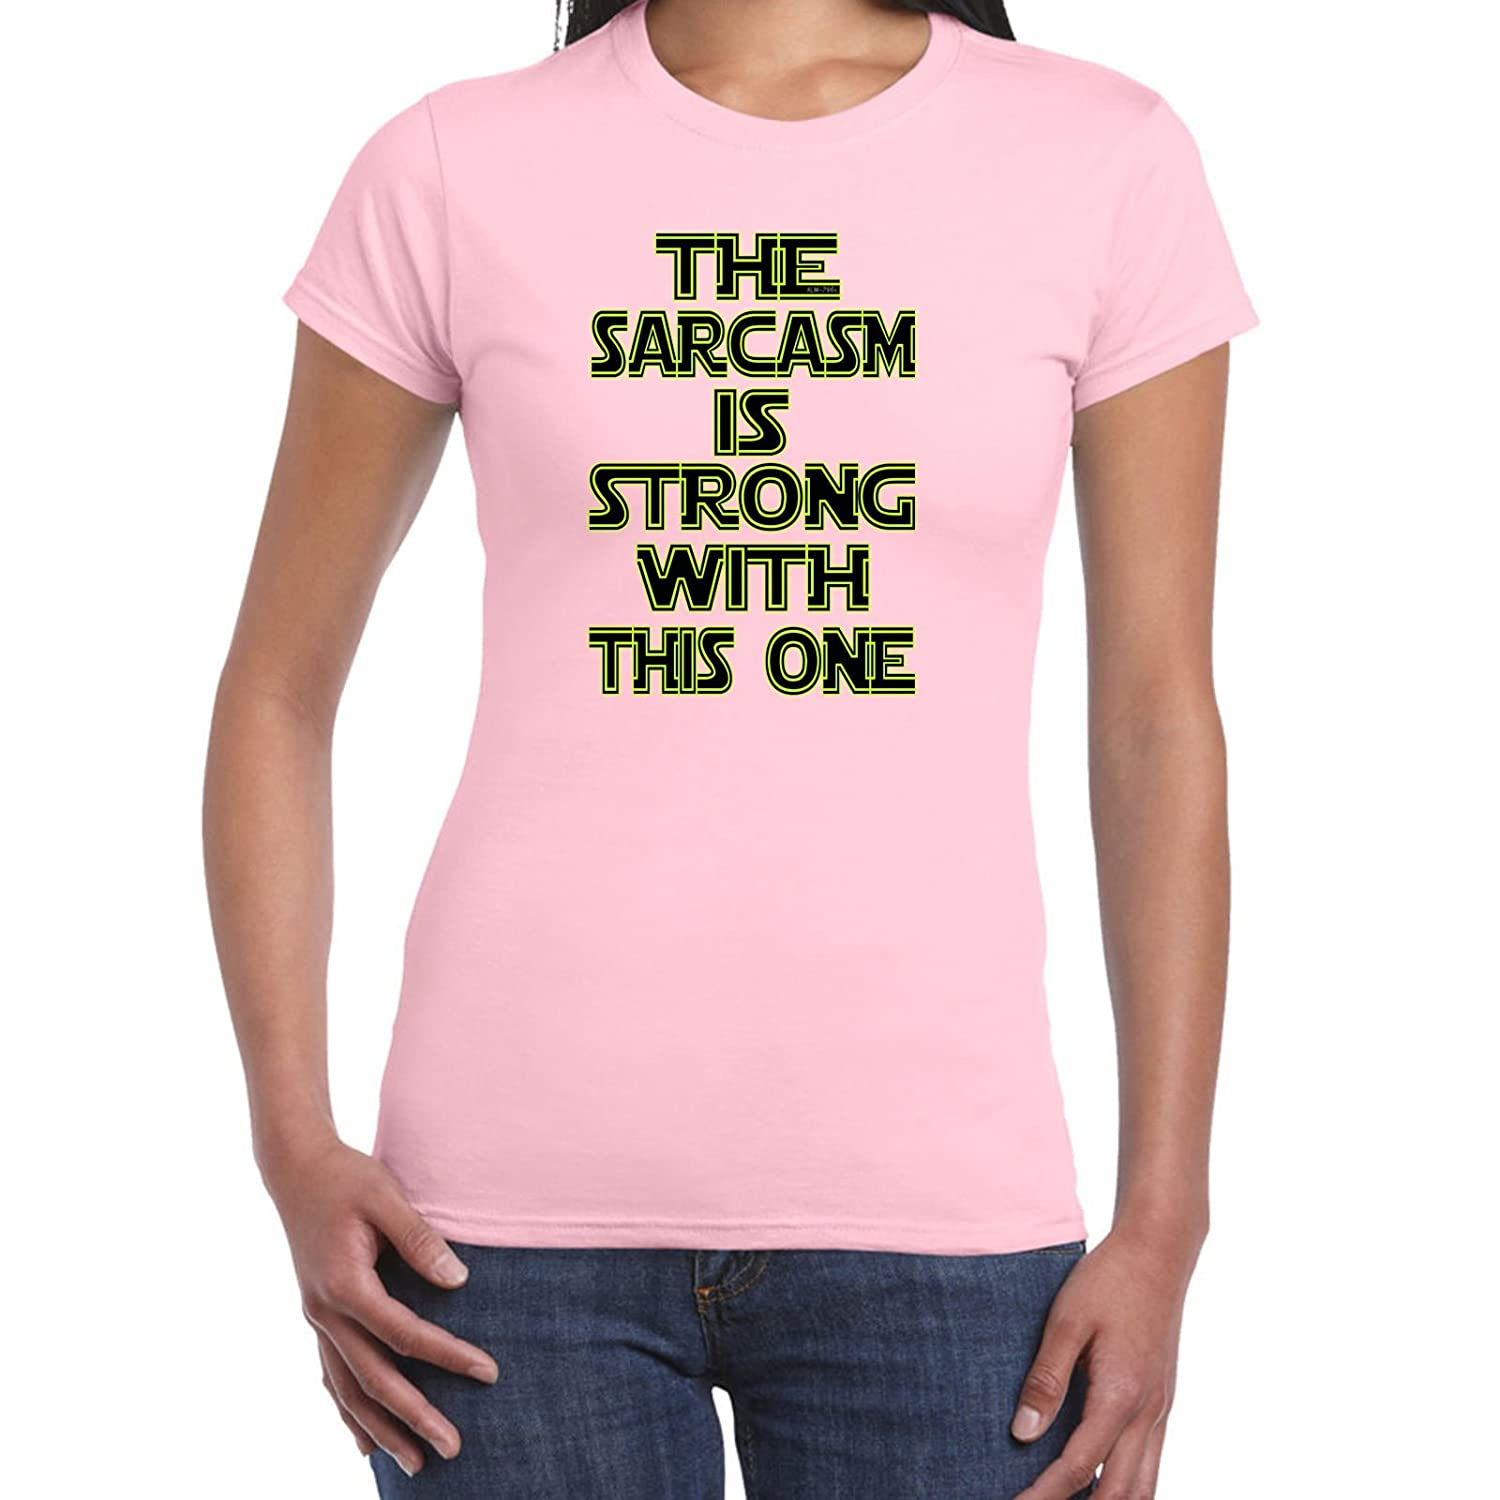 Womens Funny T Shirts-Sarcasm is Strong Star Wars Inspired-Tshirt-Funny Gift